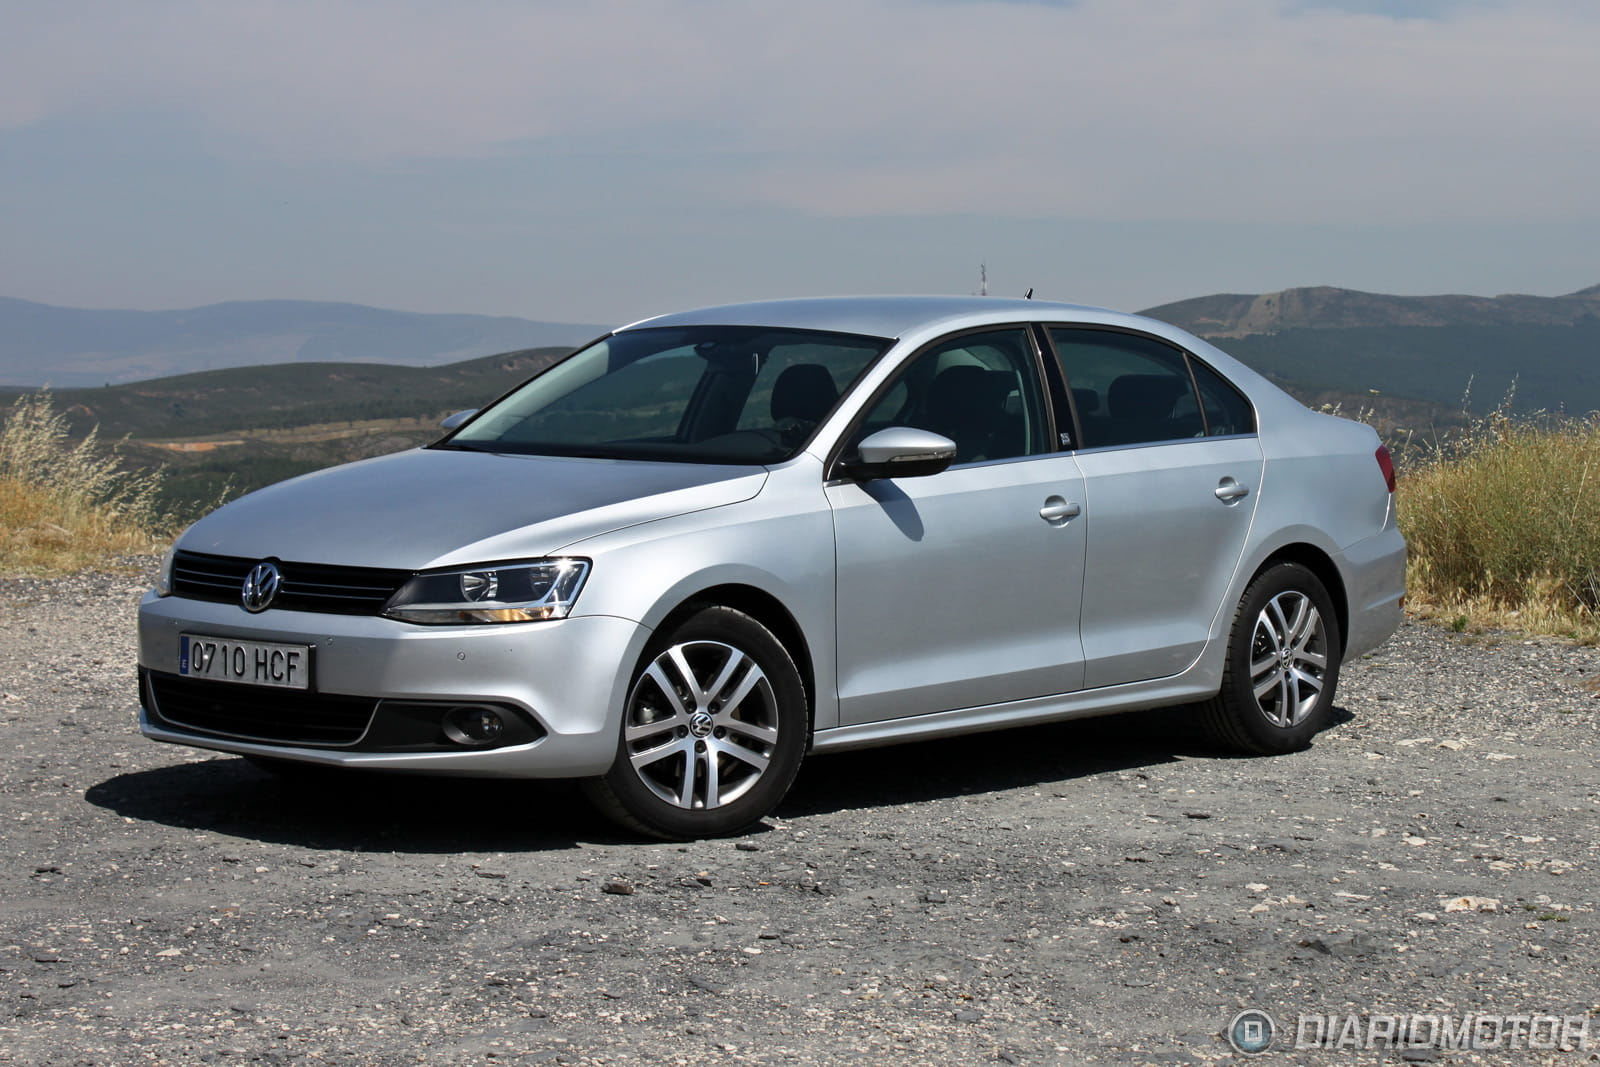 volkswagen jetta 2 0 tdi 140 cv sport a prueba i diariomotor. Black Bedroom Furniture Sets. Home Design Ideas